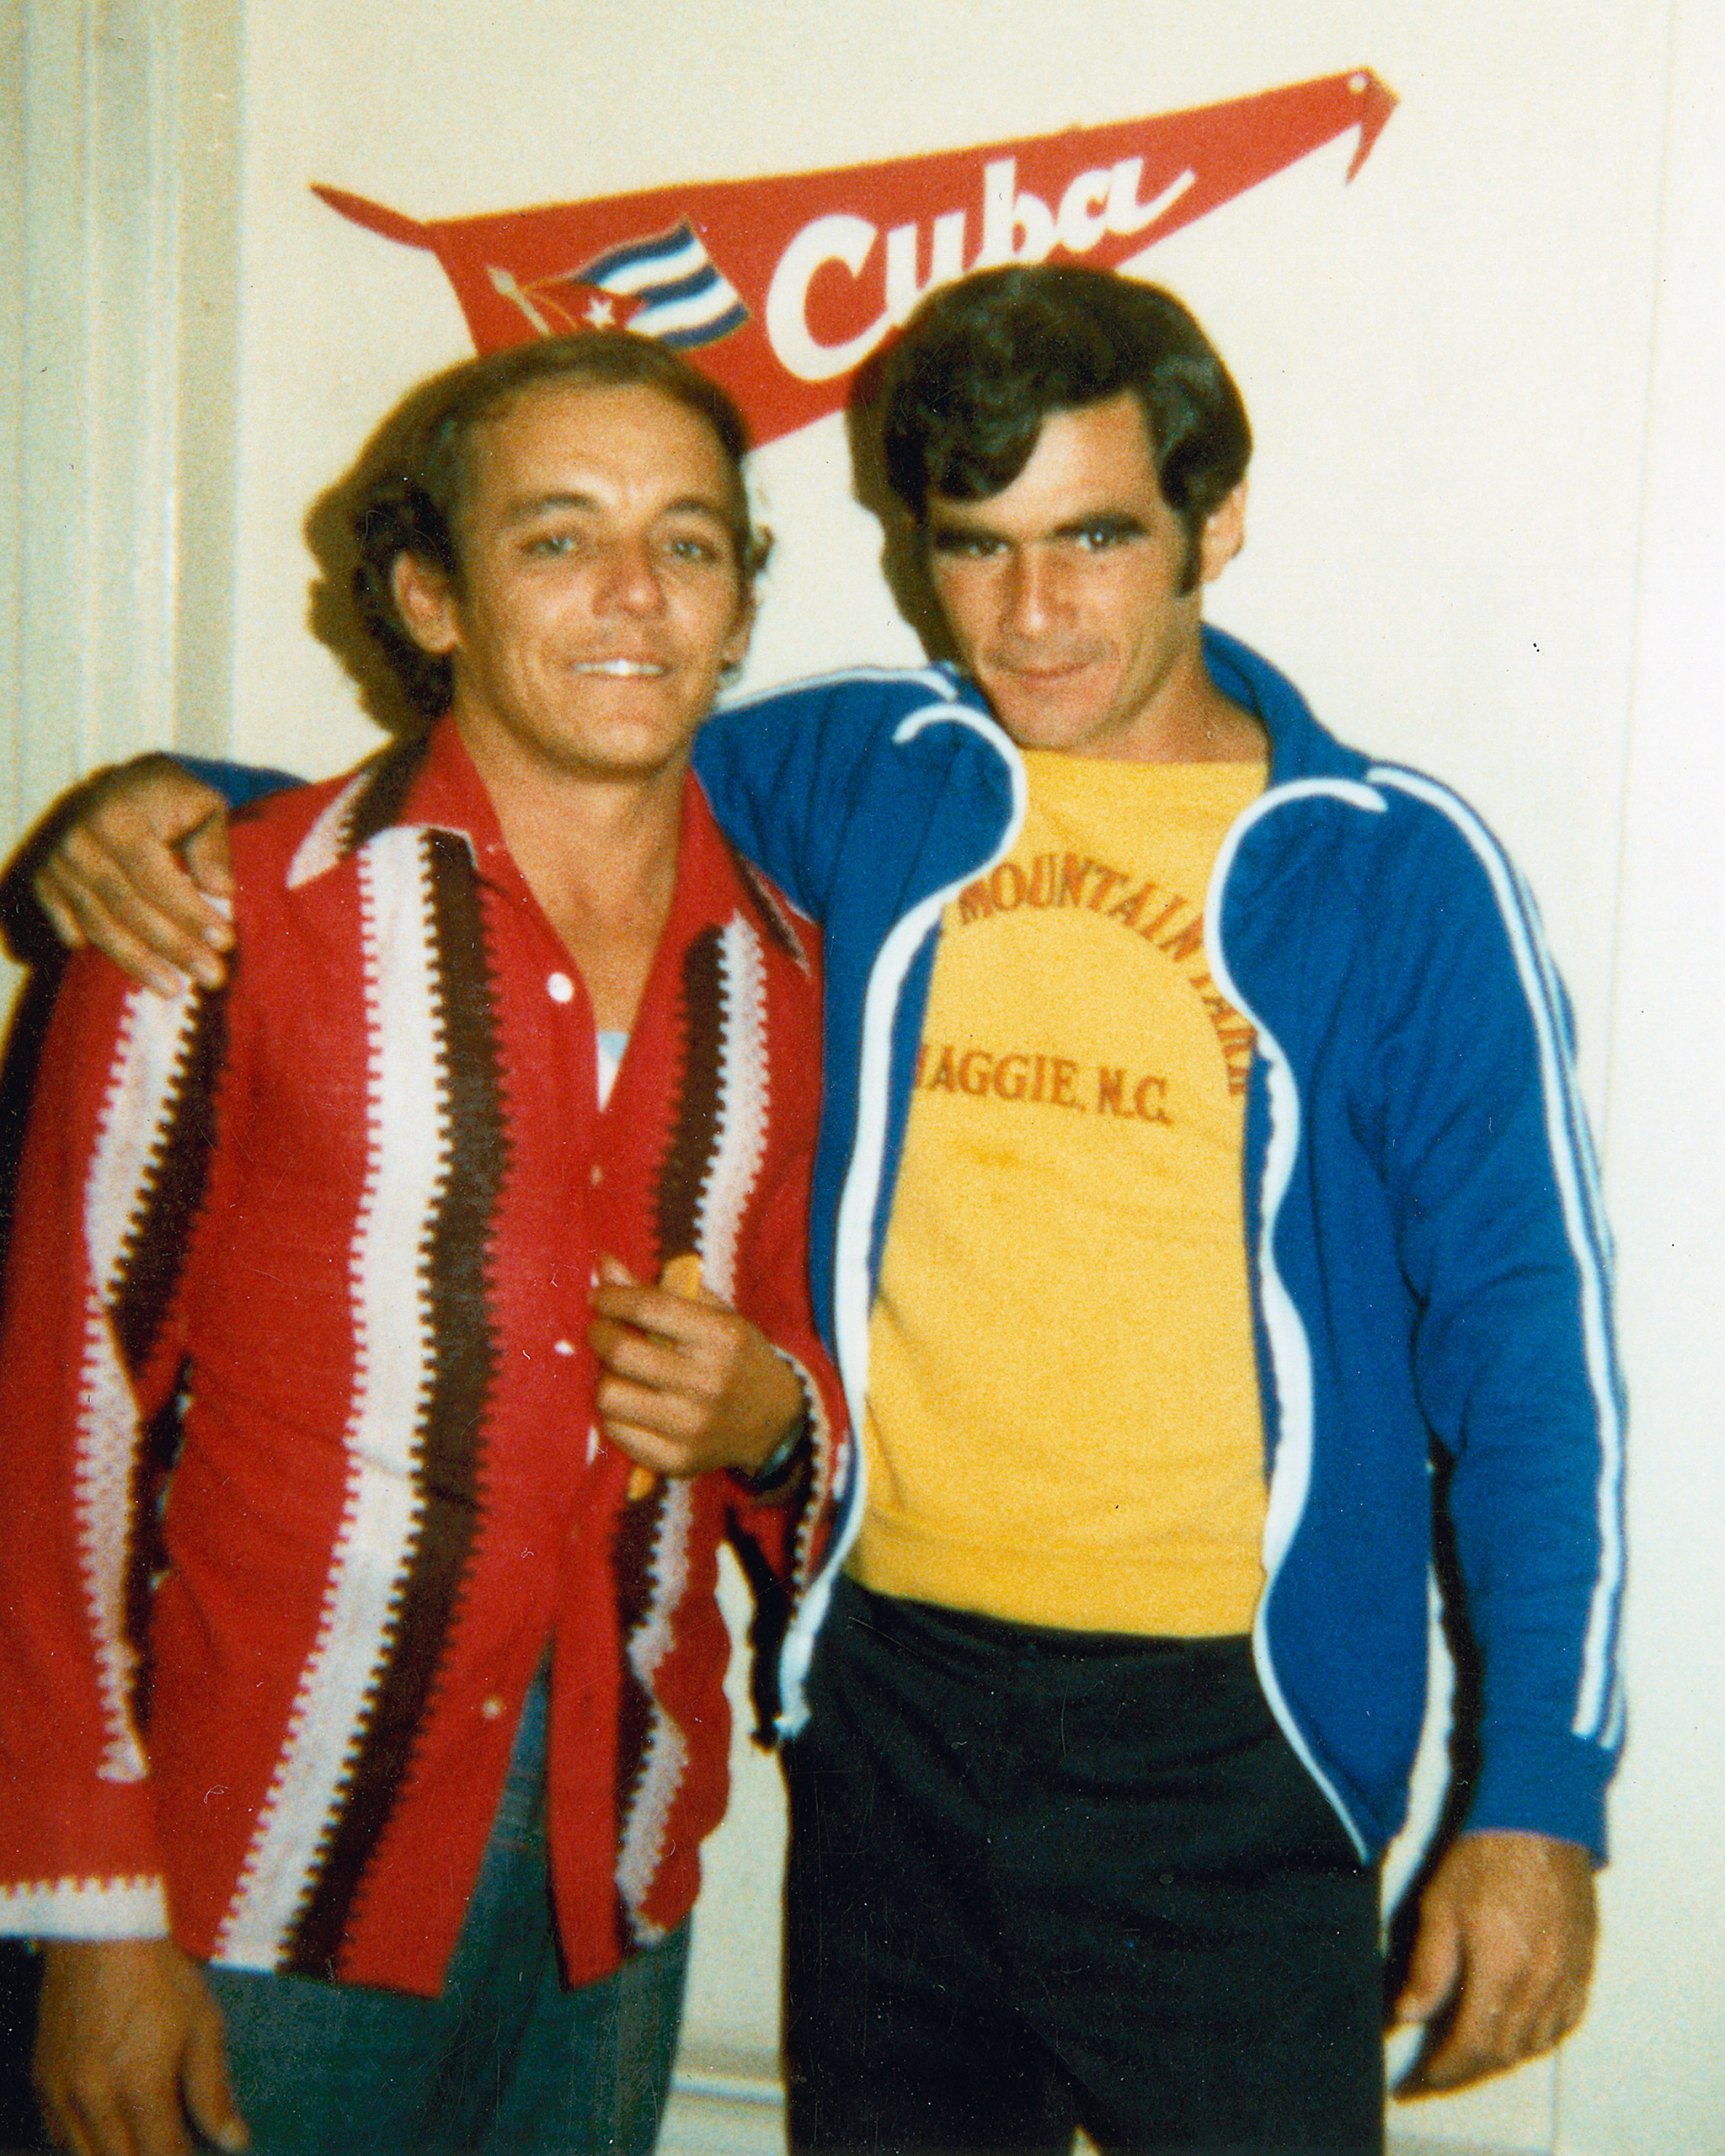 Juanito and Silvio in 1980, San Francisco. Both had just arrived to the U.S.